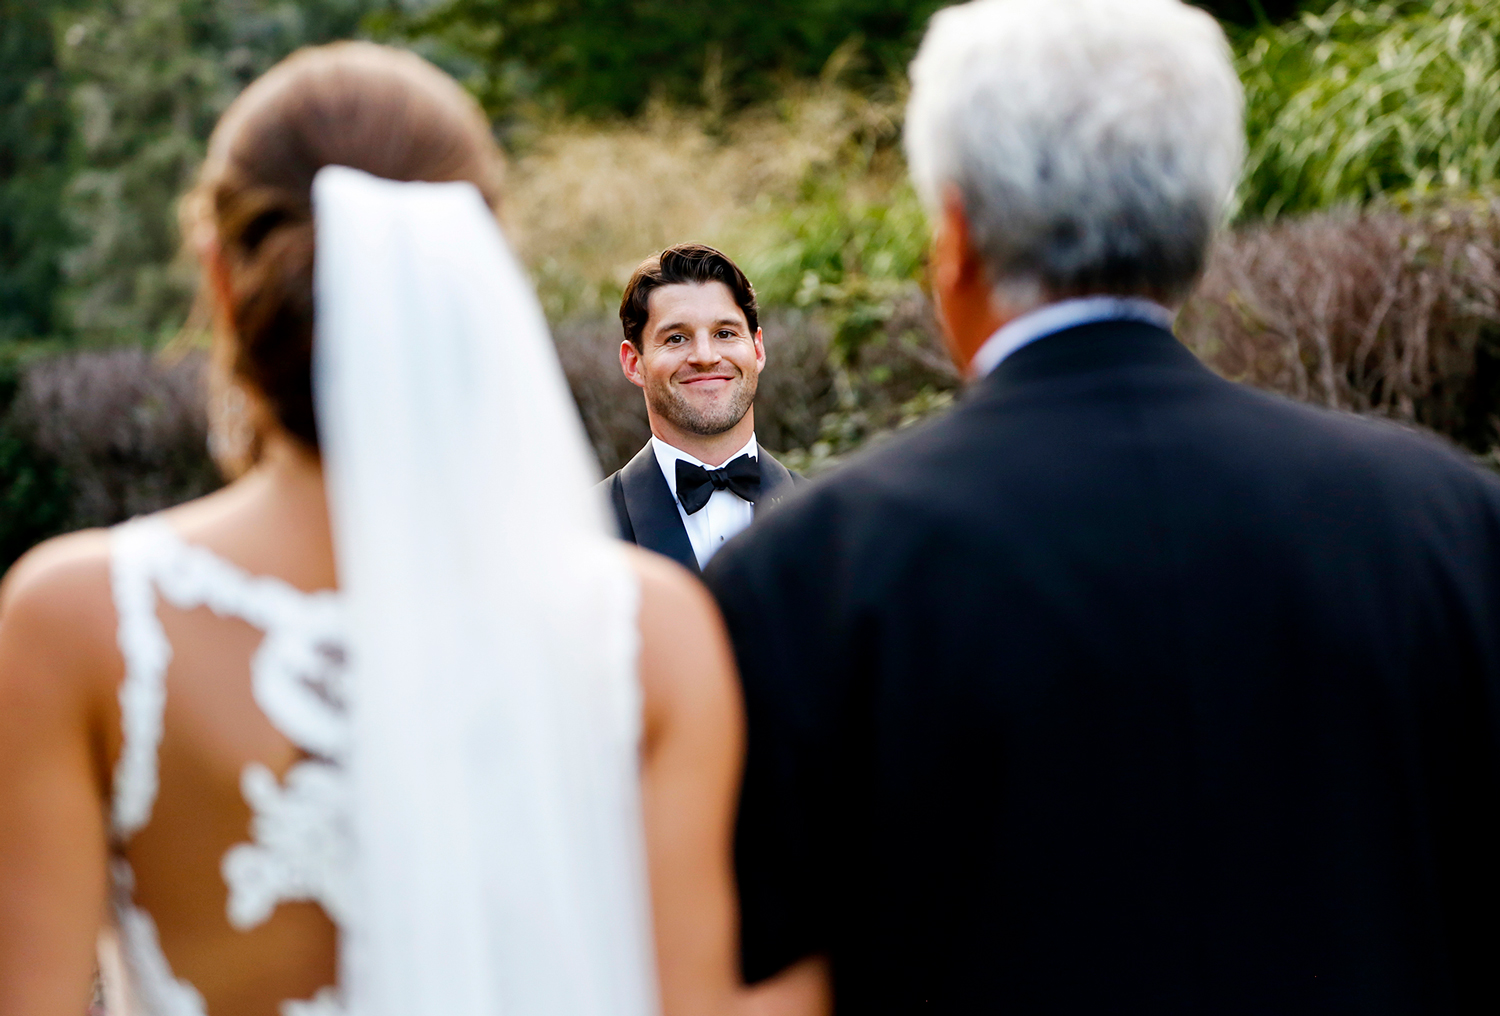 armour-house-wedding-photojournalism-Ruthie-Hauge-Photography-ceremony-outdoor-Lake-Forest-Madison-Wi-photographer.jpg